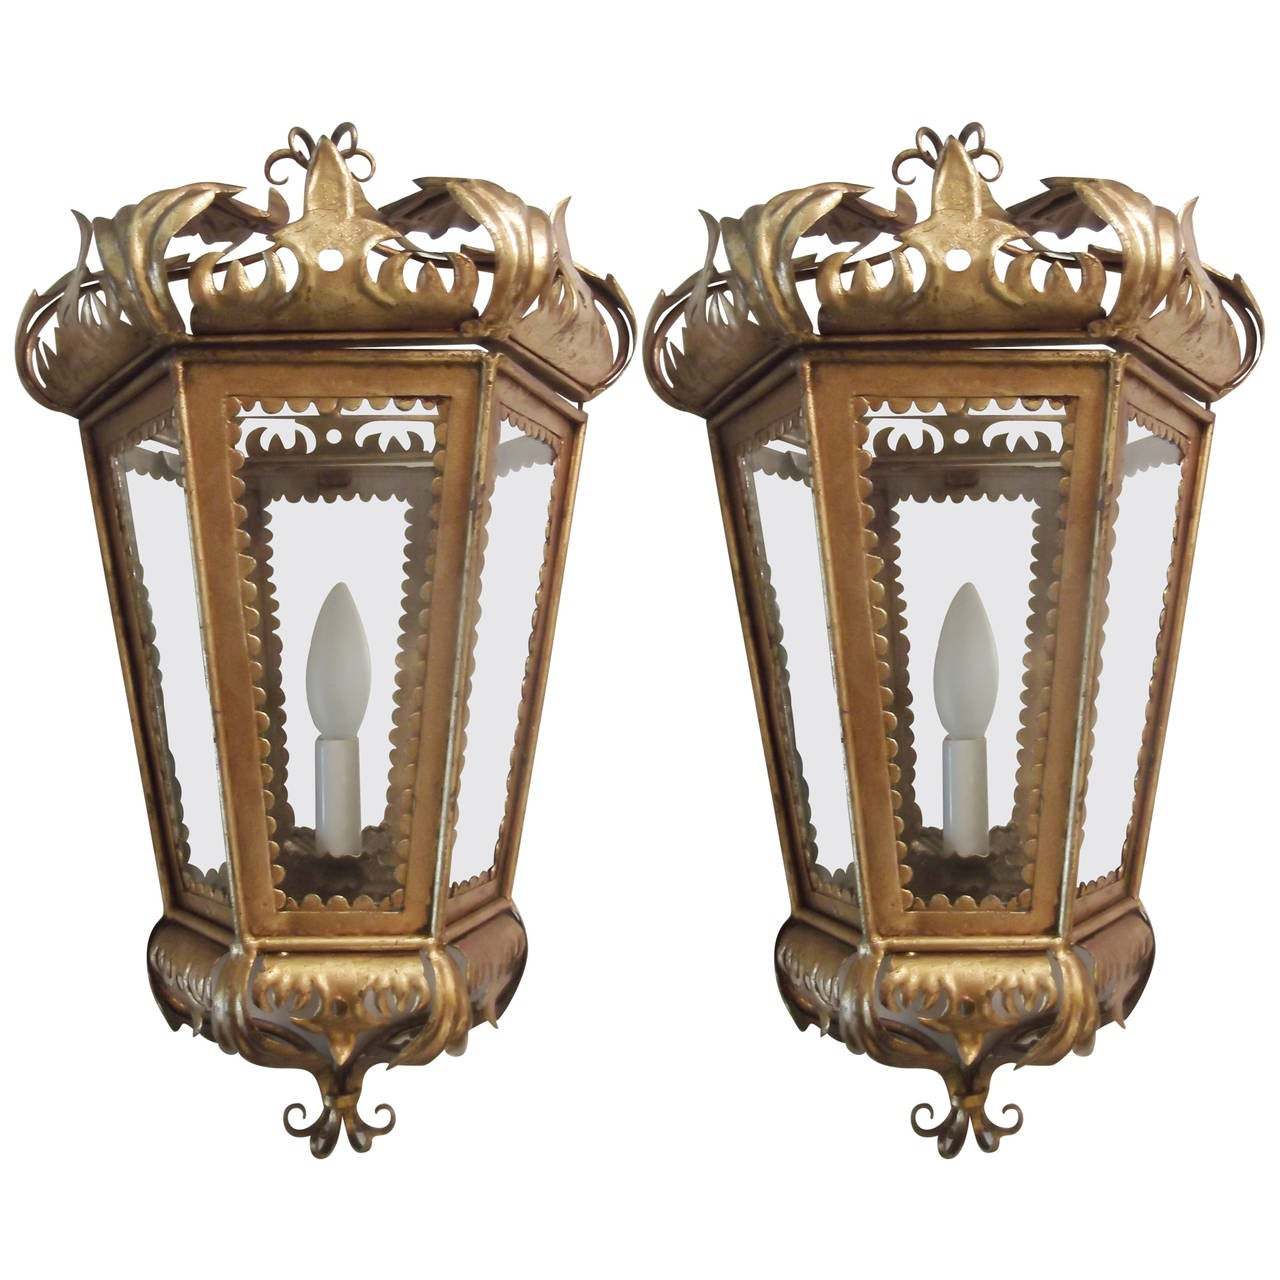 Pair of Hollywood Regency Gilt Toleware Italian Sconces